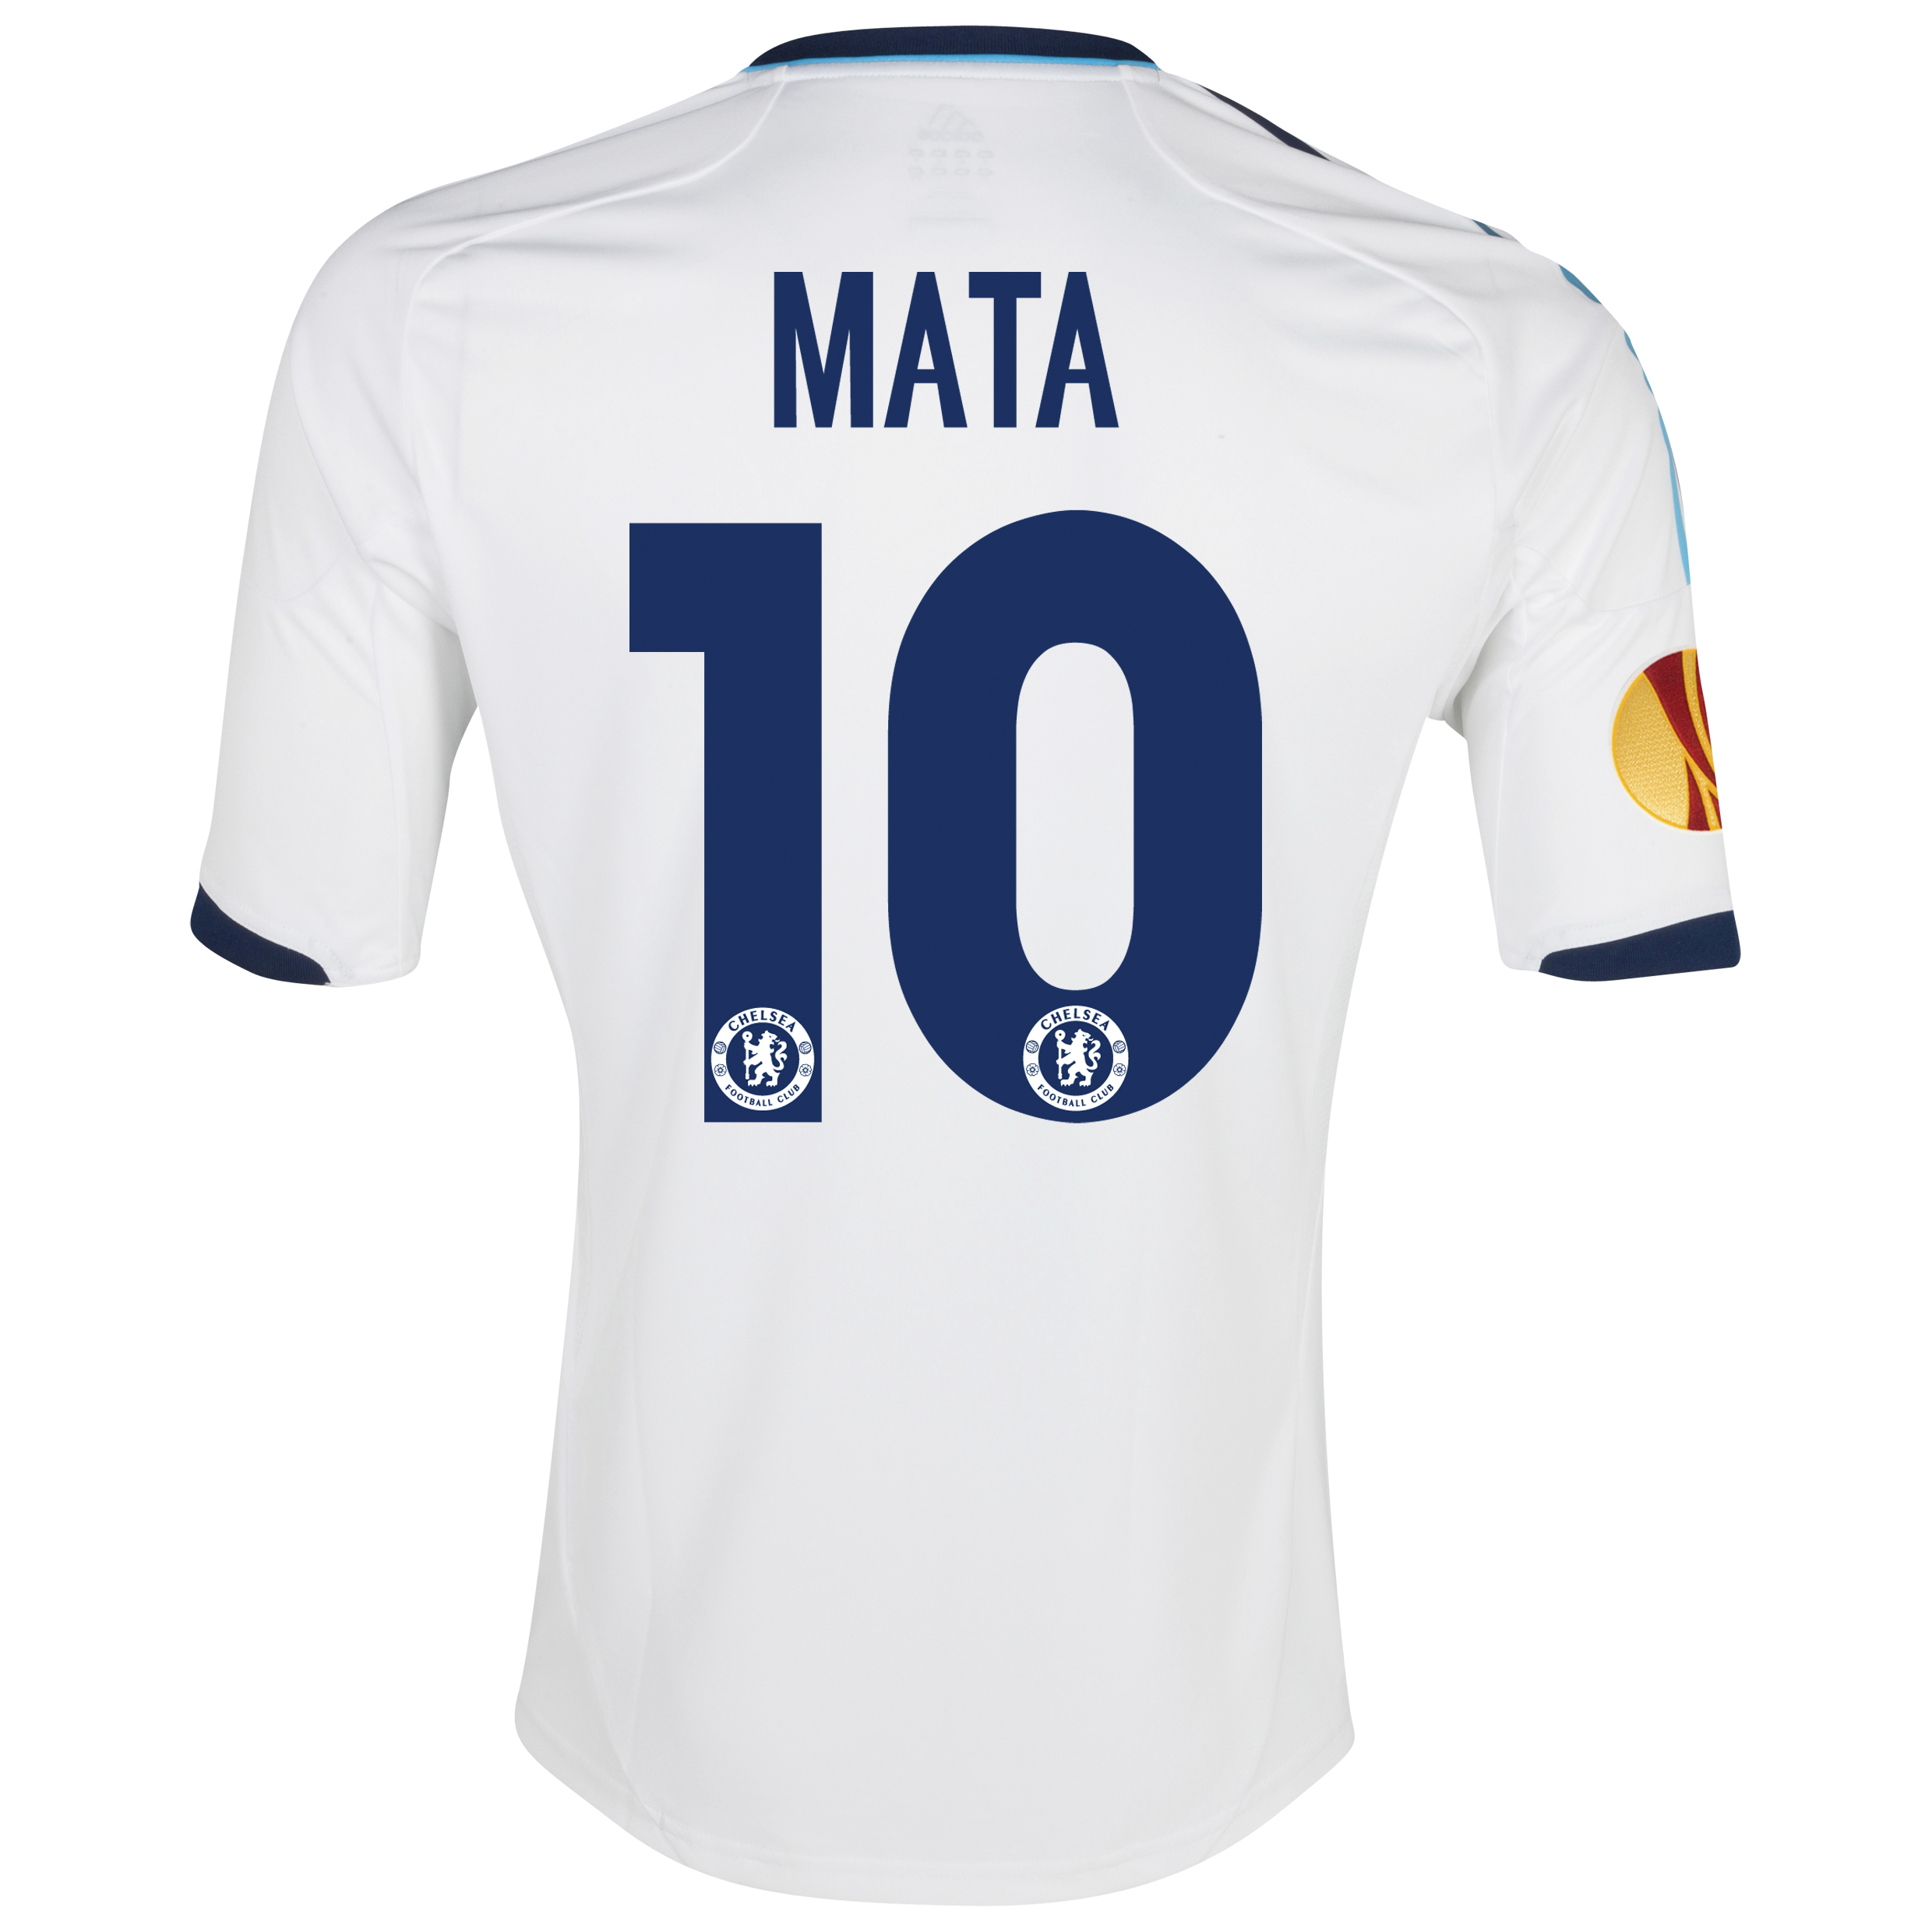 Chelsea UEFA Europa League Away Shirt 2012/13 - Kids with Mata 10 printing Including Europa Badge